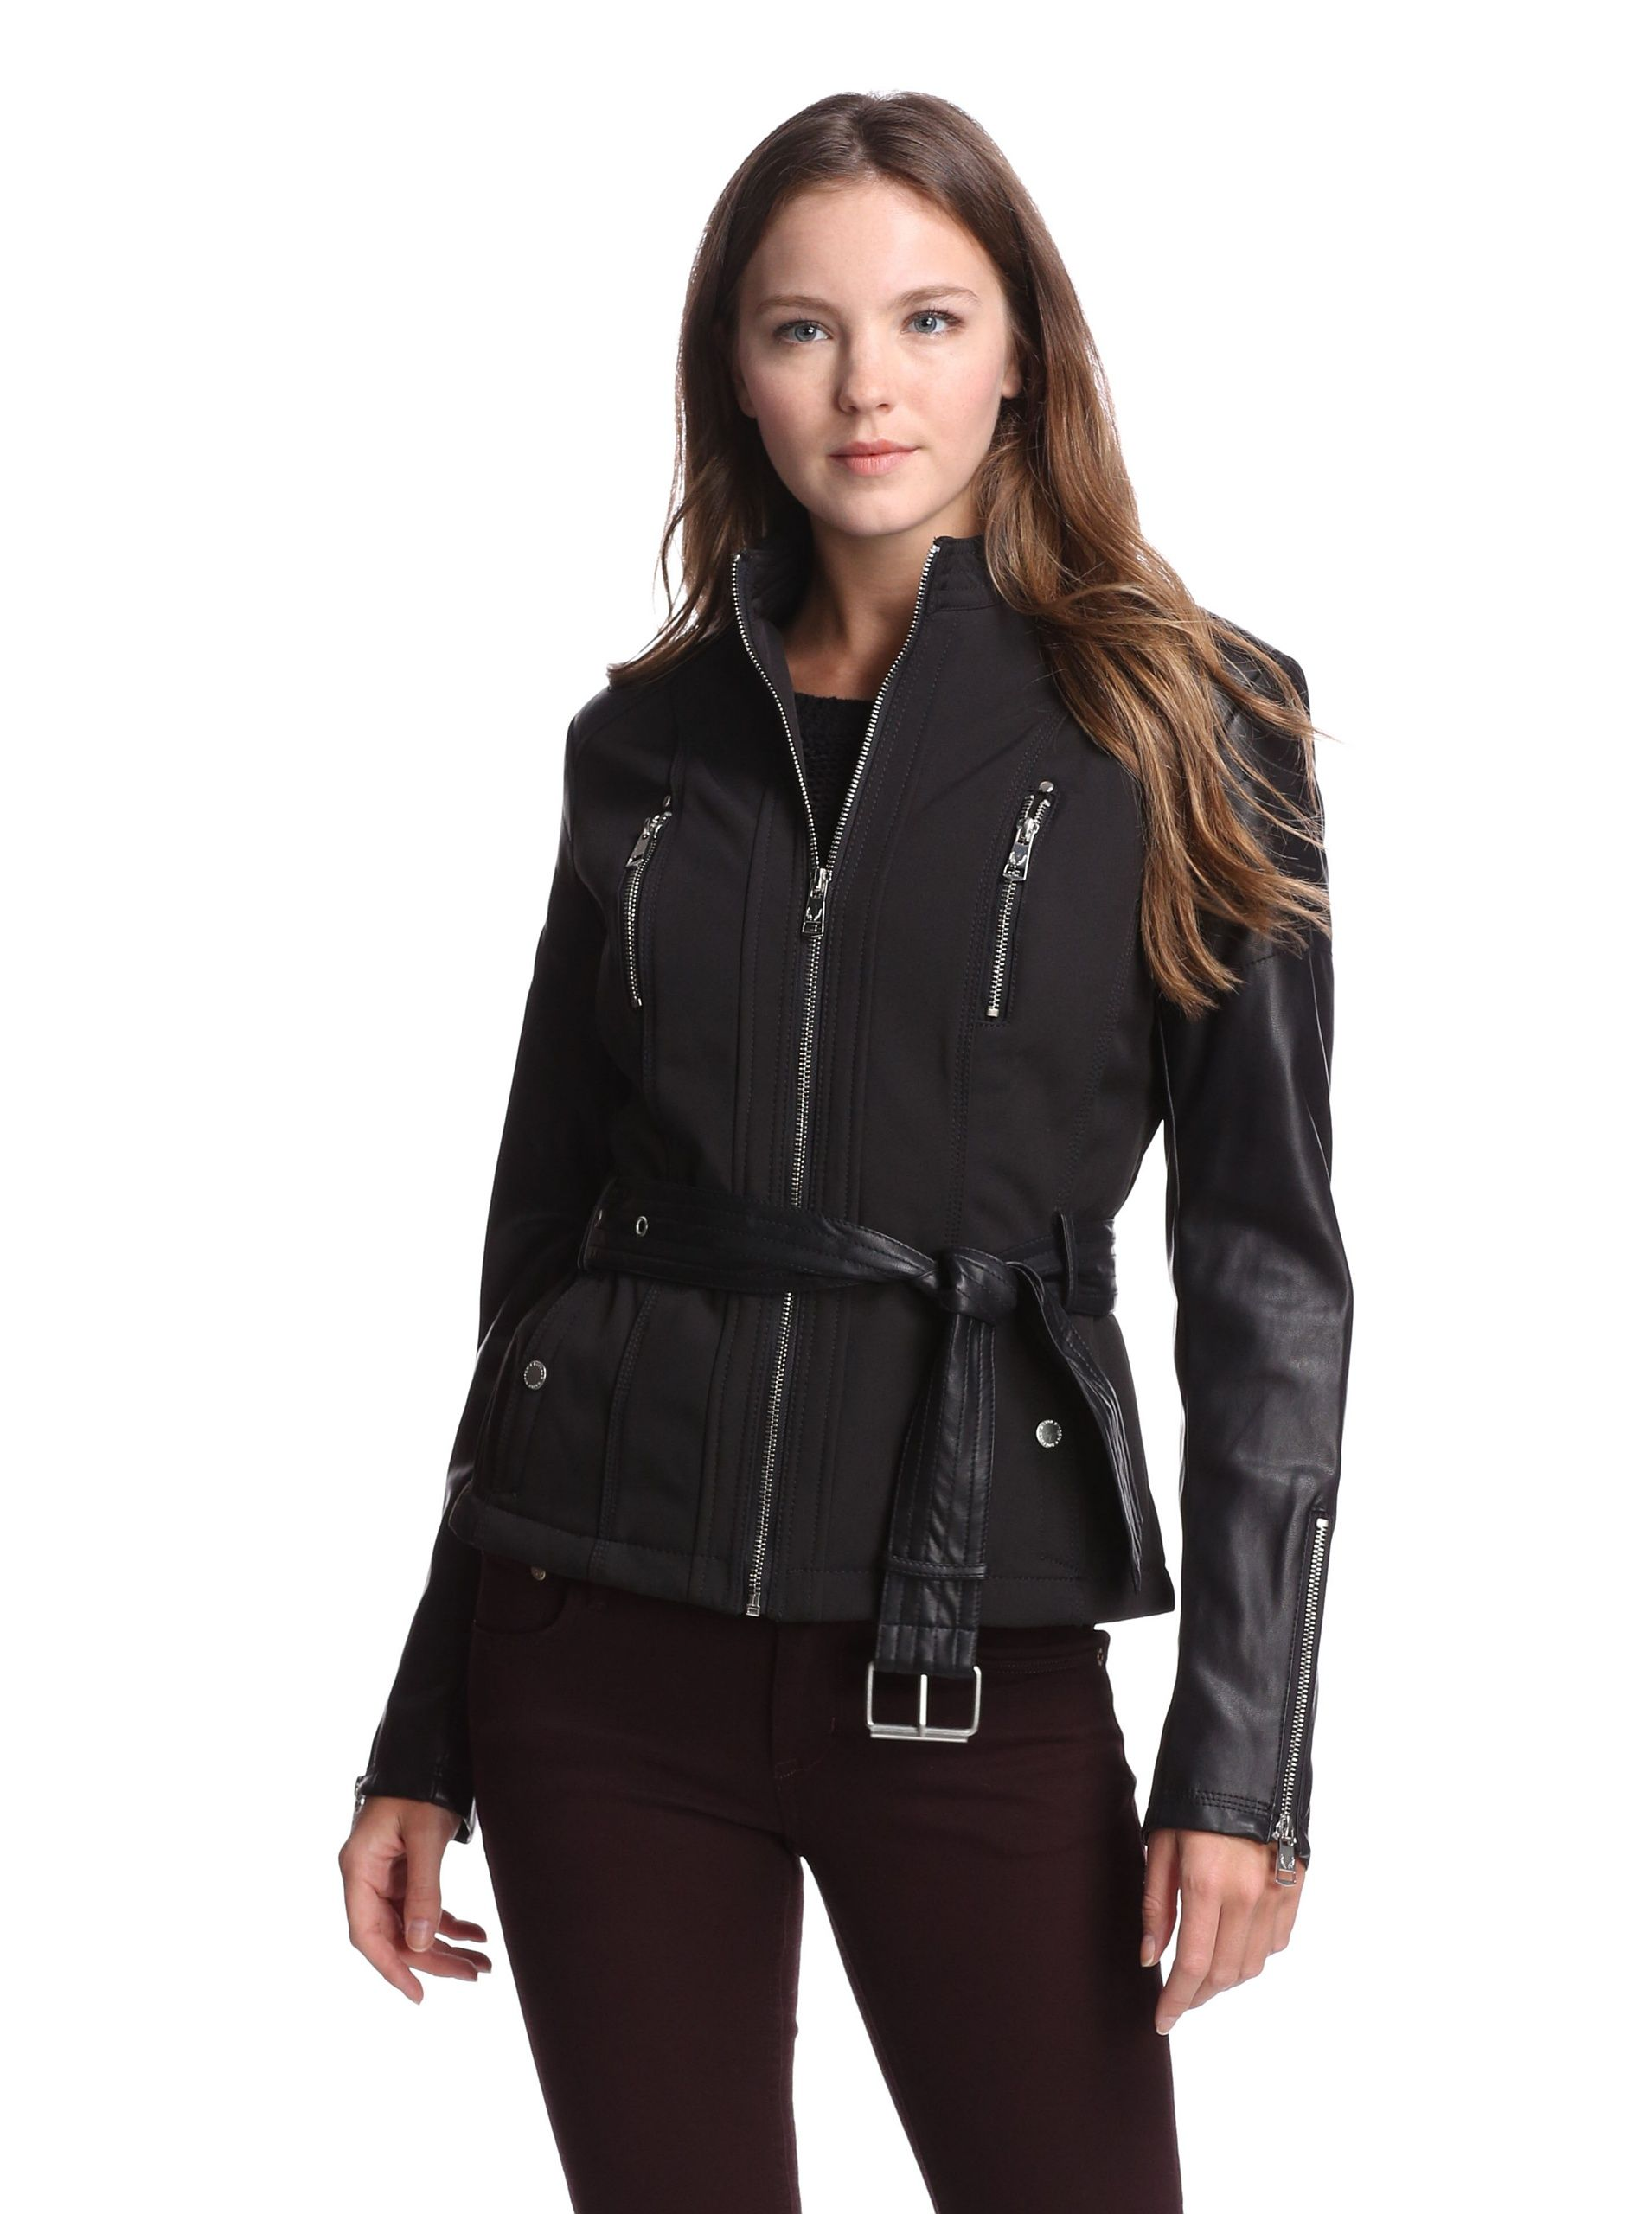 Buffalo David Bitton Women S Jacket With Faux Leather Black Black Zip Up Jacket With Faux Leather Sle Couture Outfits Clothes For Women Fashion Clothes Women [ 2560 x 1910 Pixel ]